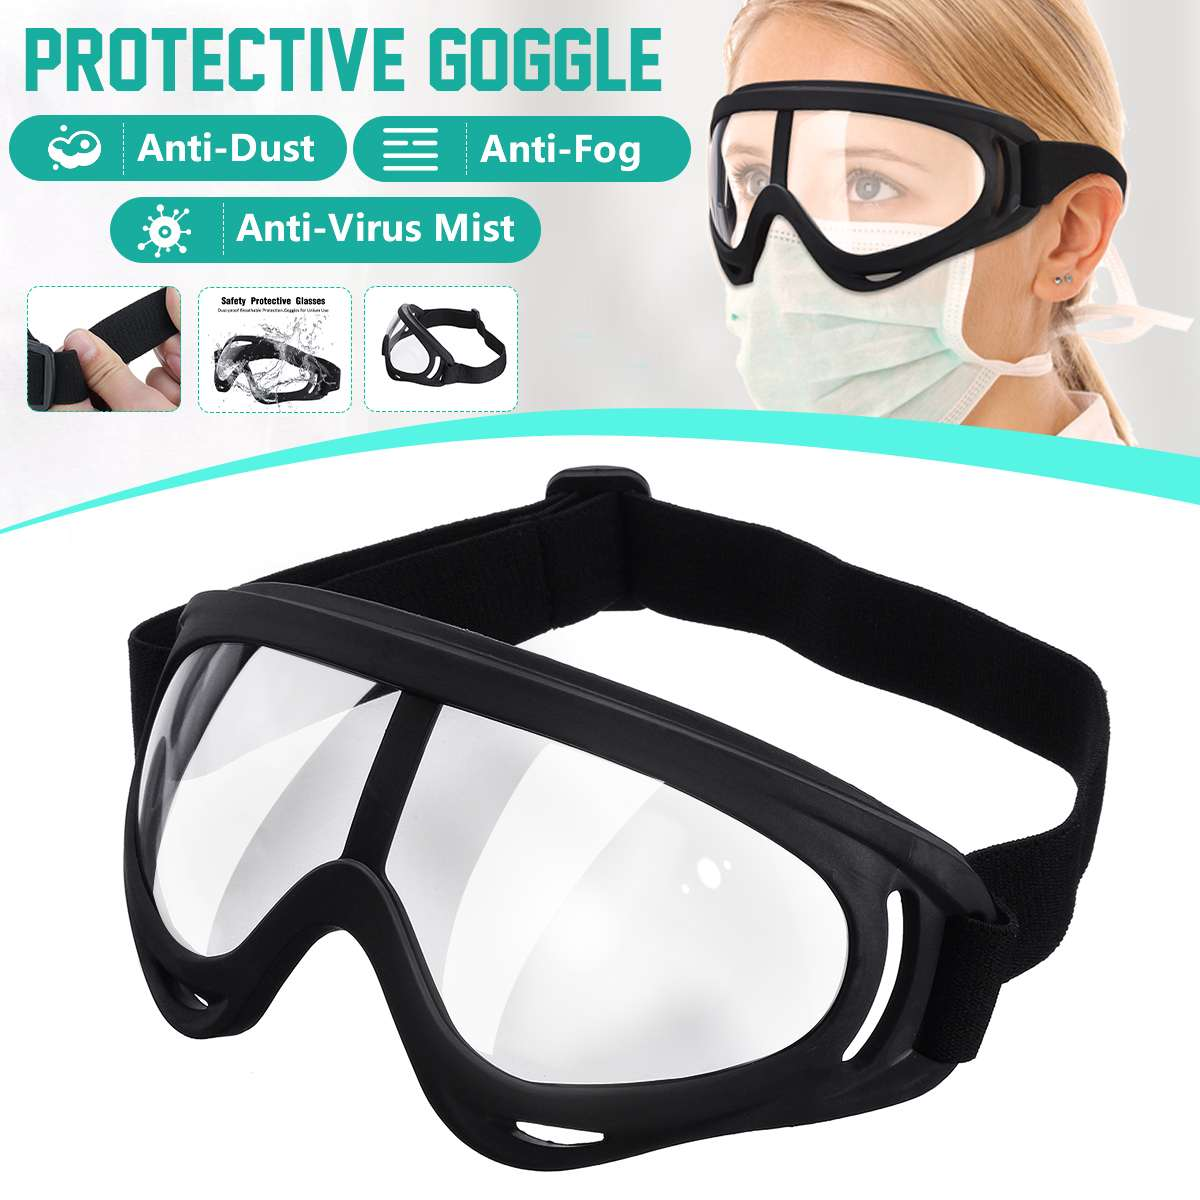 Medical PC Safety Goggles Fully Enclosed Transparent Lens Goggles Eye Protective Glasses Anti-Fog Antisand Dust Resist UV Light